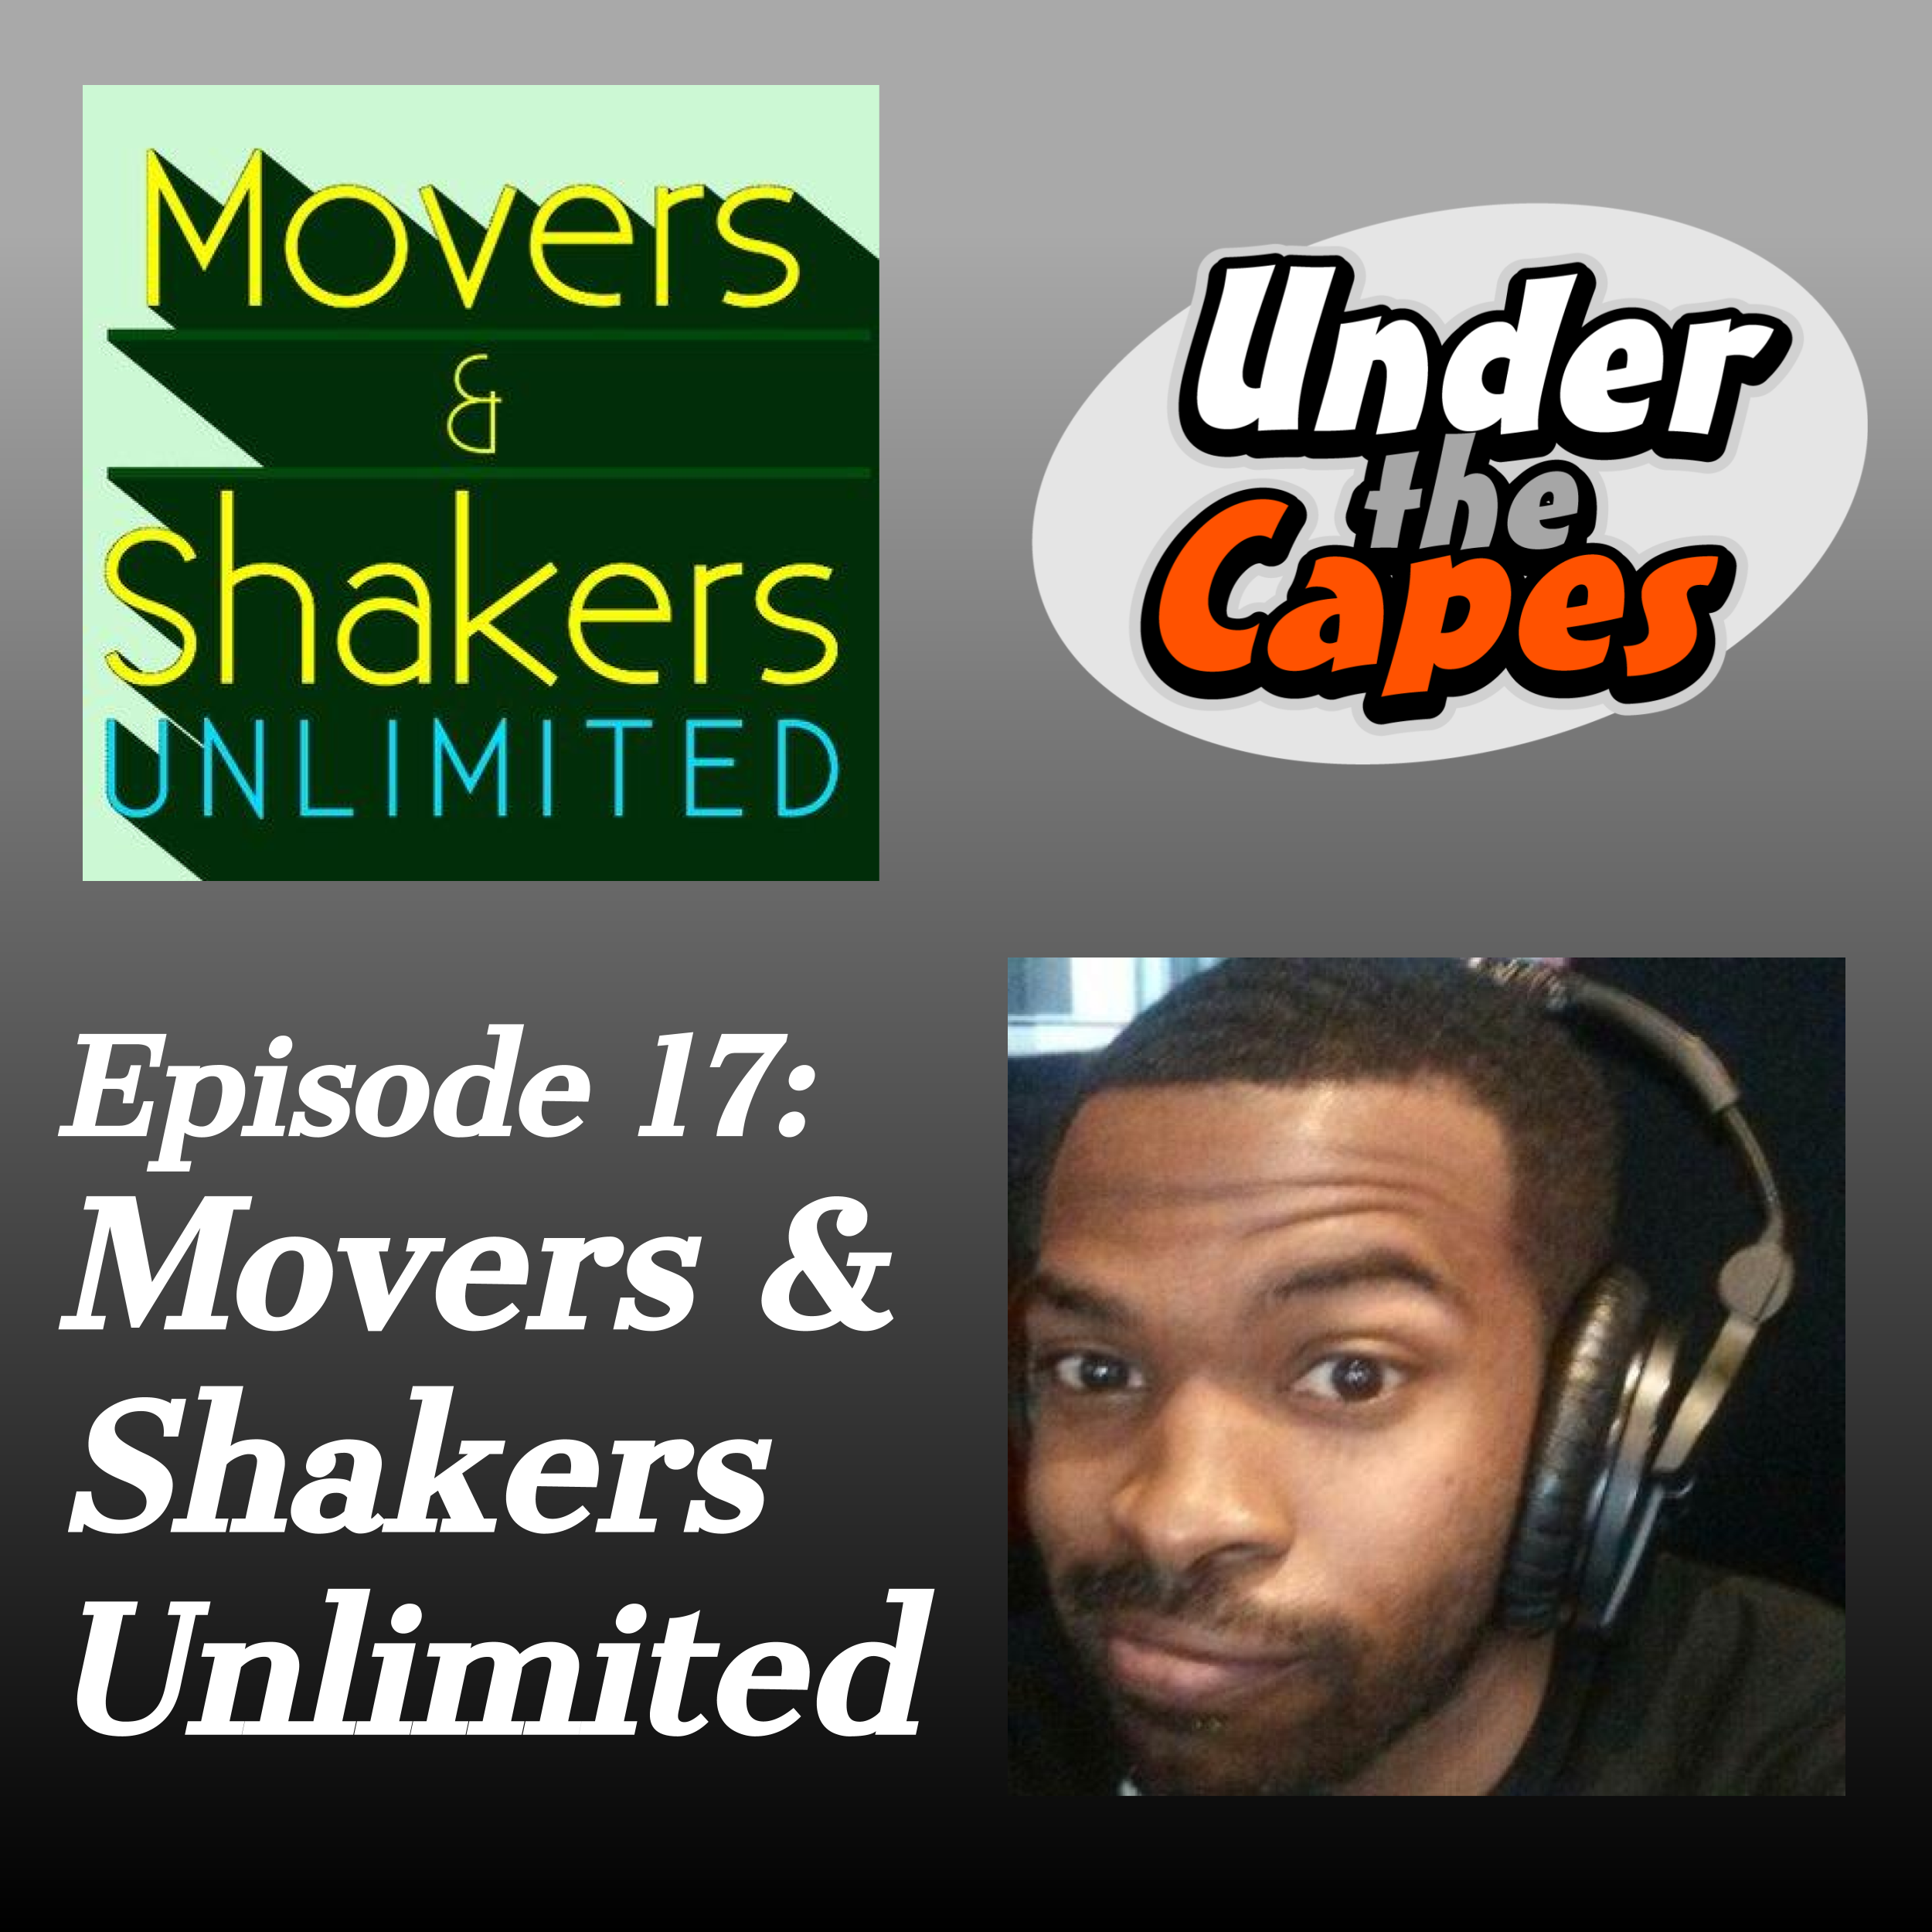 Episode 17: Movers and Shakers Unlimited